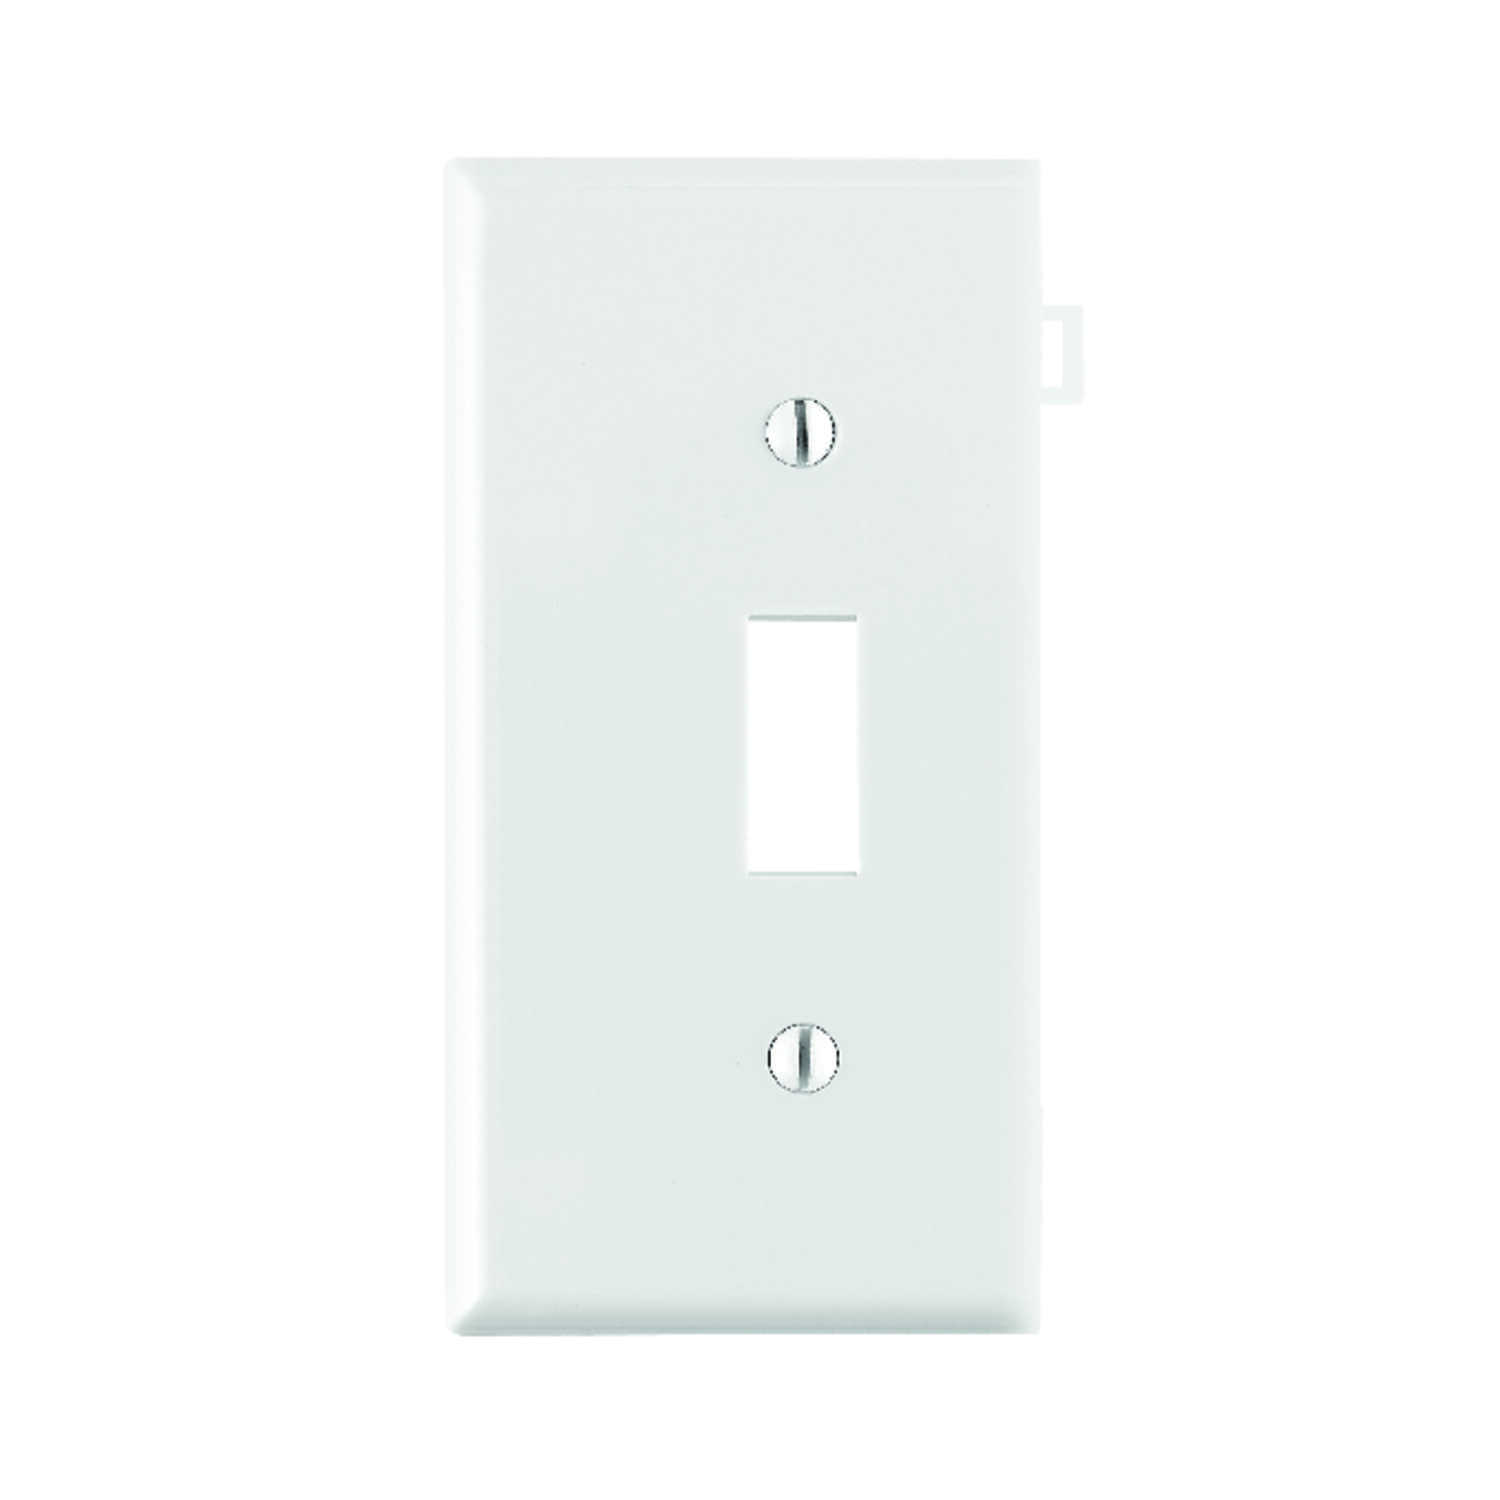 Leviton  End Section  White  1 gang Toggle  Wall Plate  1 pk Nylon